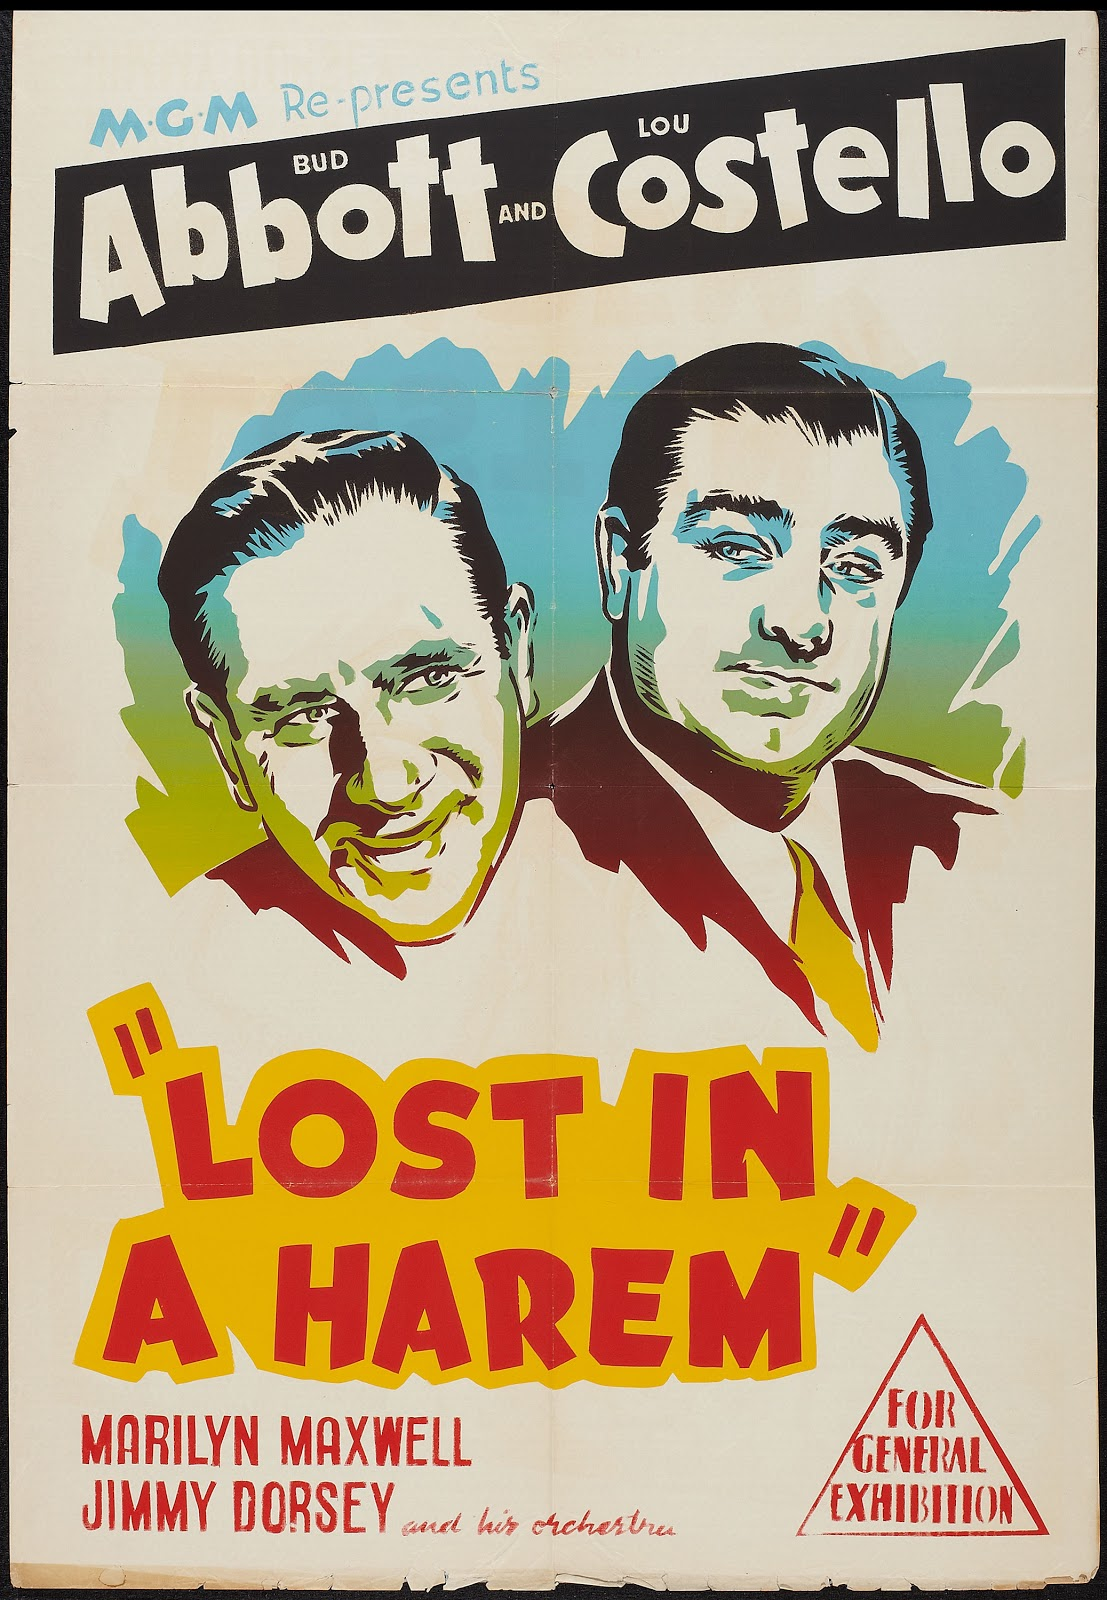 Comedy Lustybunny Baby Shoes Motive Round 21 Cokelat Tua Abbott And Costello Lost In A Harem